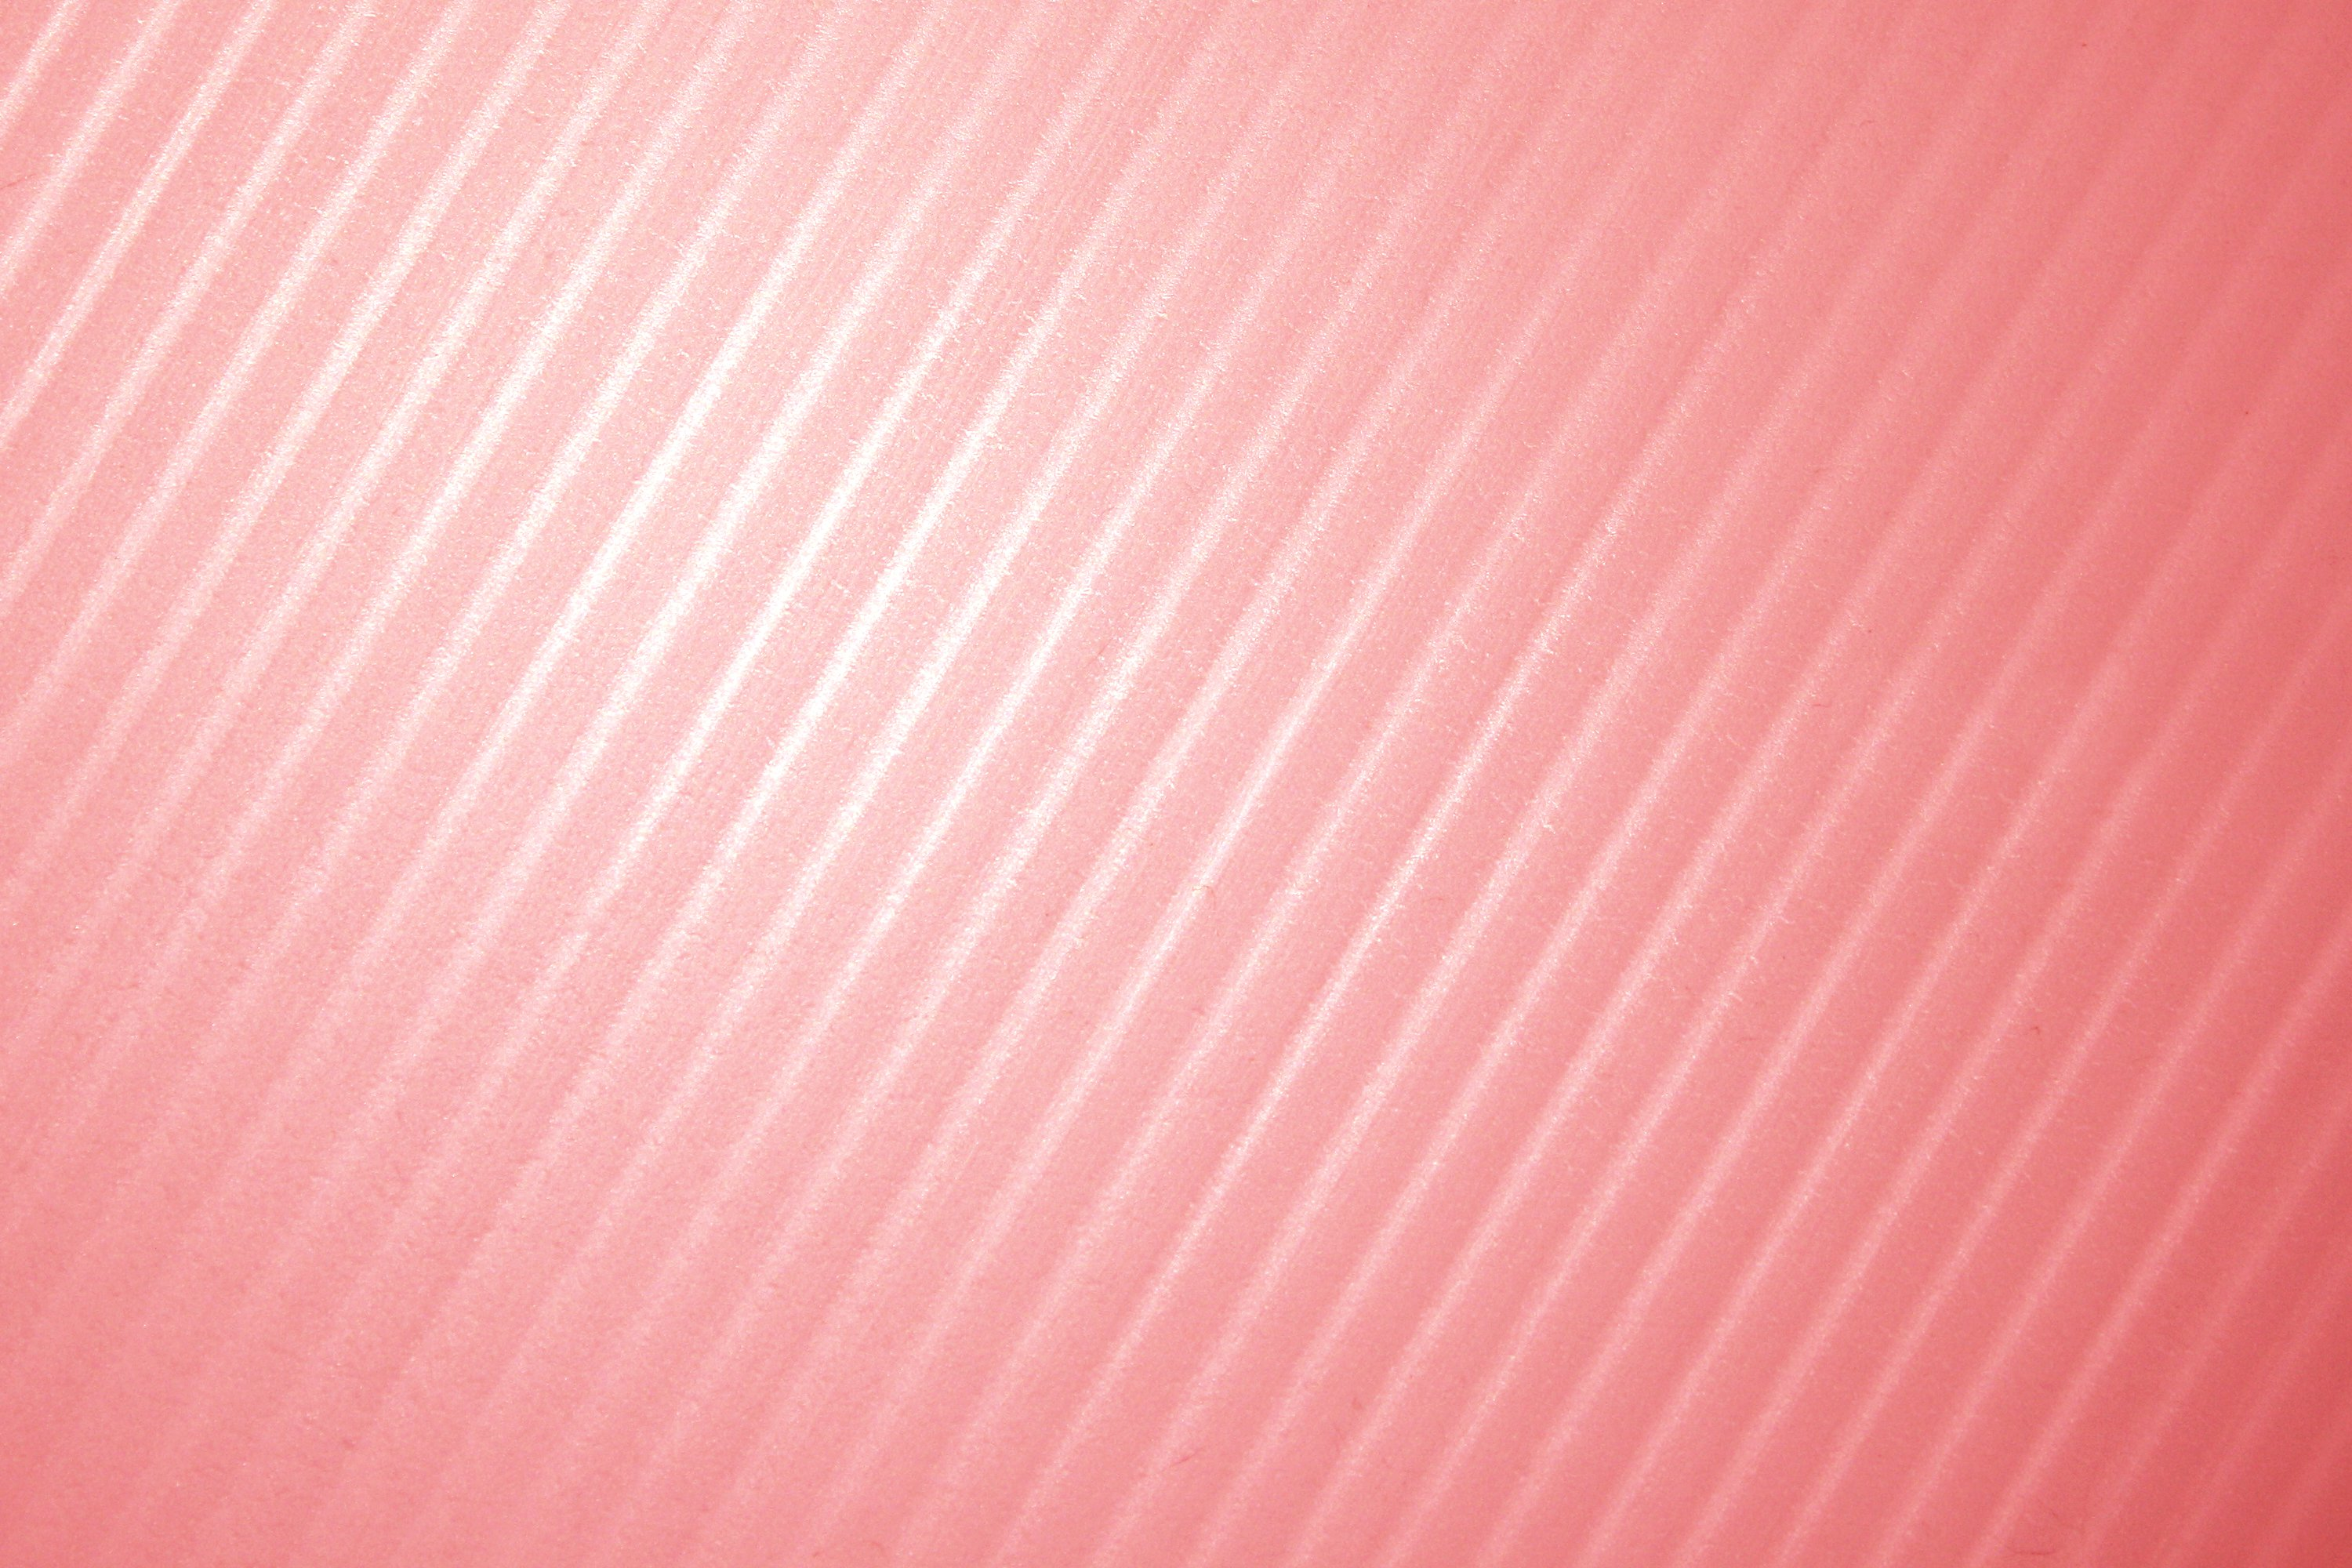 Off white diagonal striped plastic texture picture free photograph - Salmon Red Diagonal Striped Plastic Texture